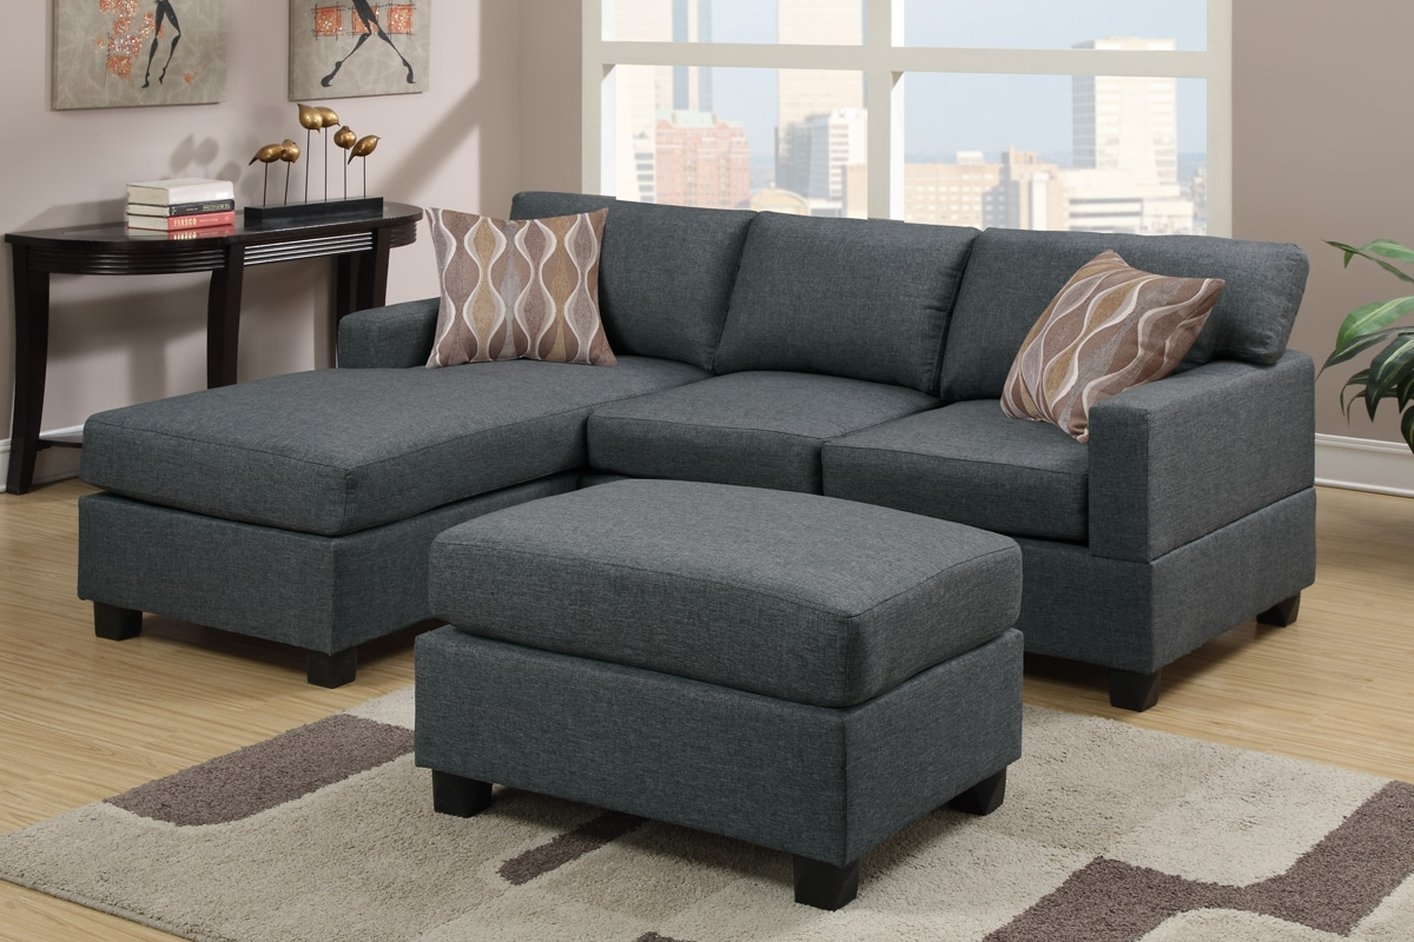 Sectional Sofa Design: Best Sectional Sofas With Ottoman Design Pertaining To Sofas With Ottoman (View 9 of 10)